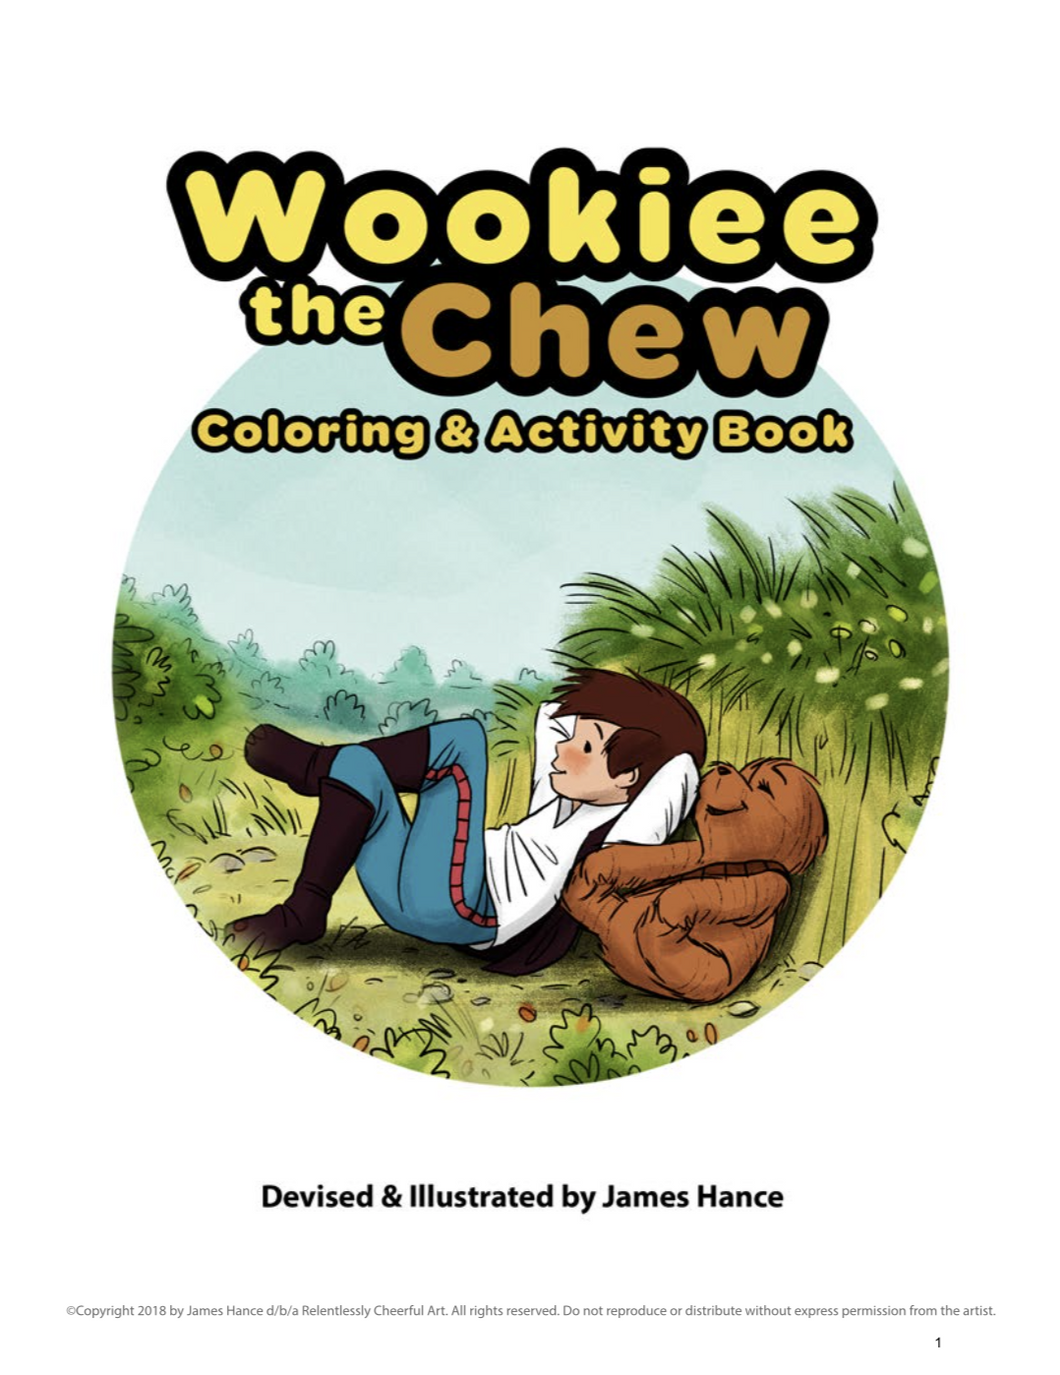 NEW! Wookiee the Chew Activity Book